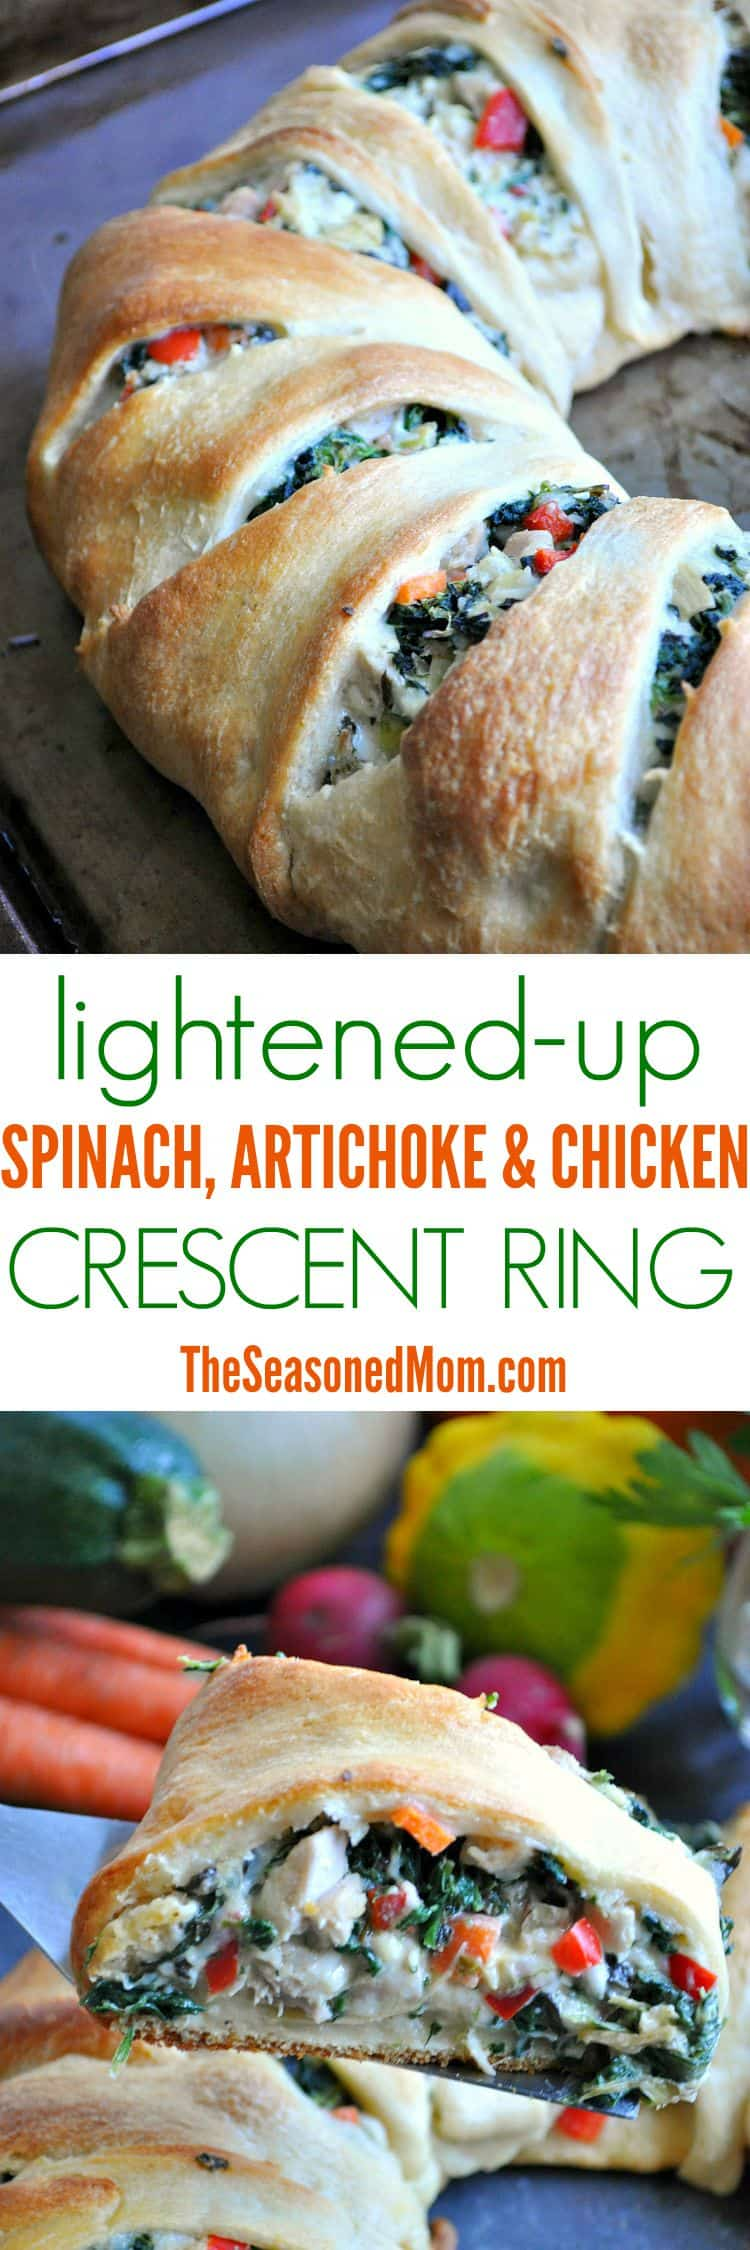 Lightened Up Spinach Artichoke & Chicken Crescent Ring